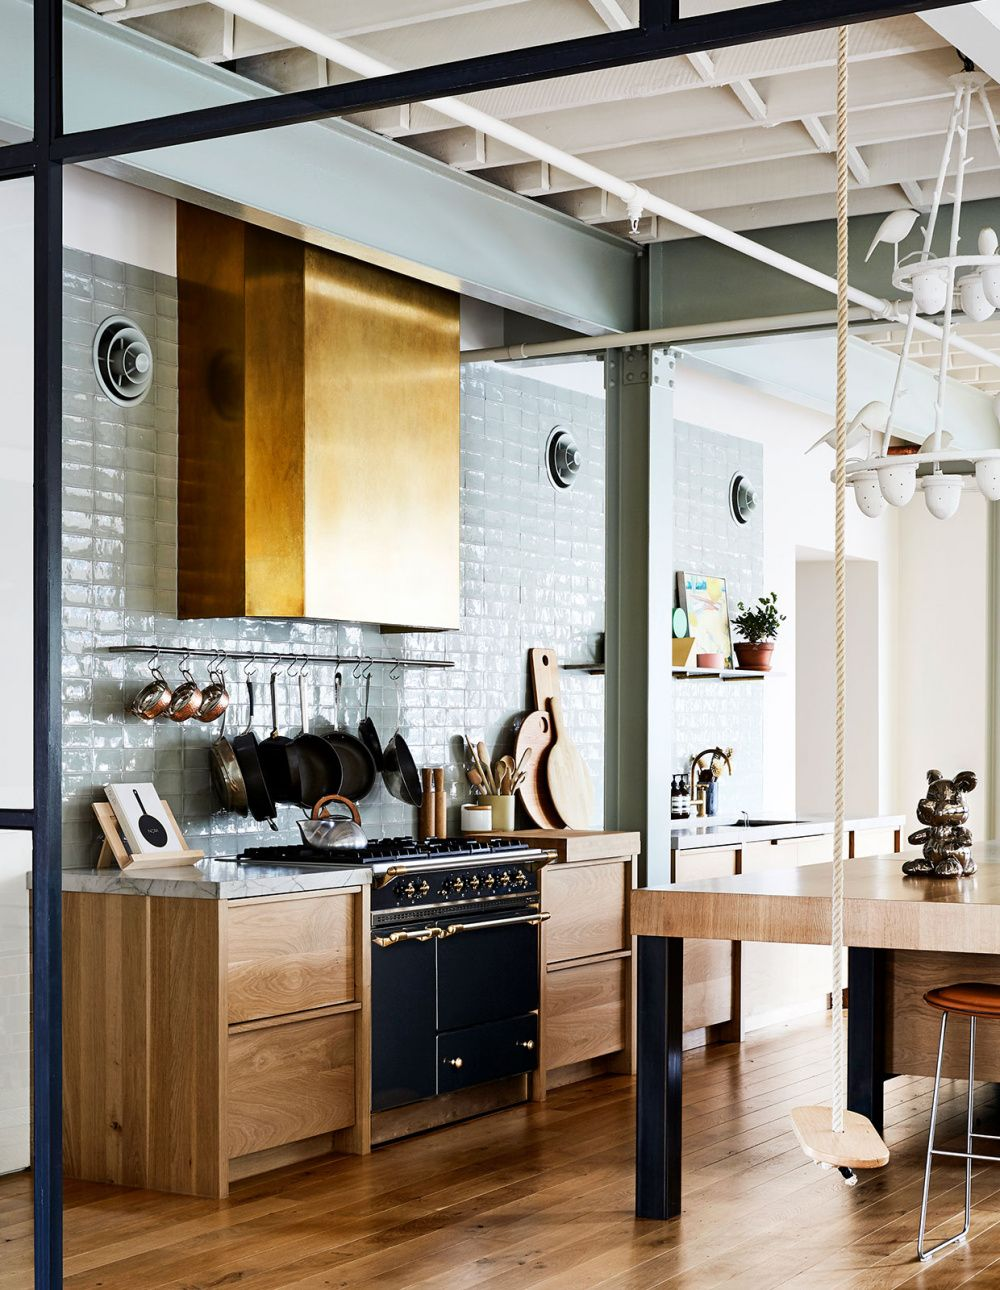 Kitchen Room Interior Design: A Jaw-Dropping Apartment In Australia's First Warehouse